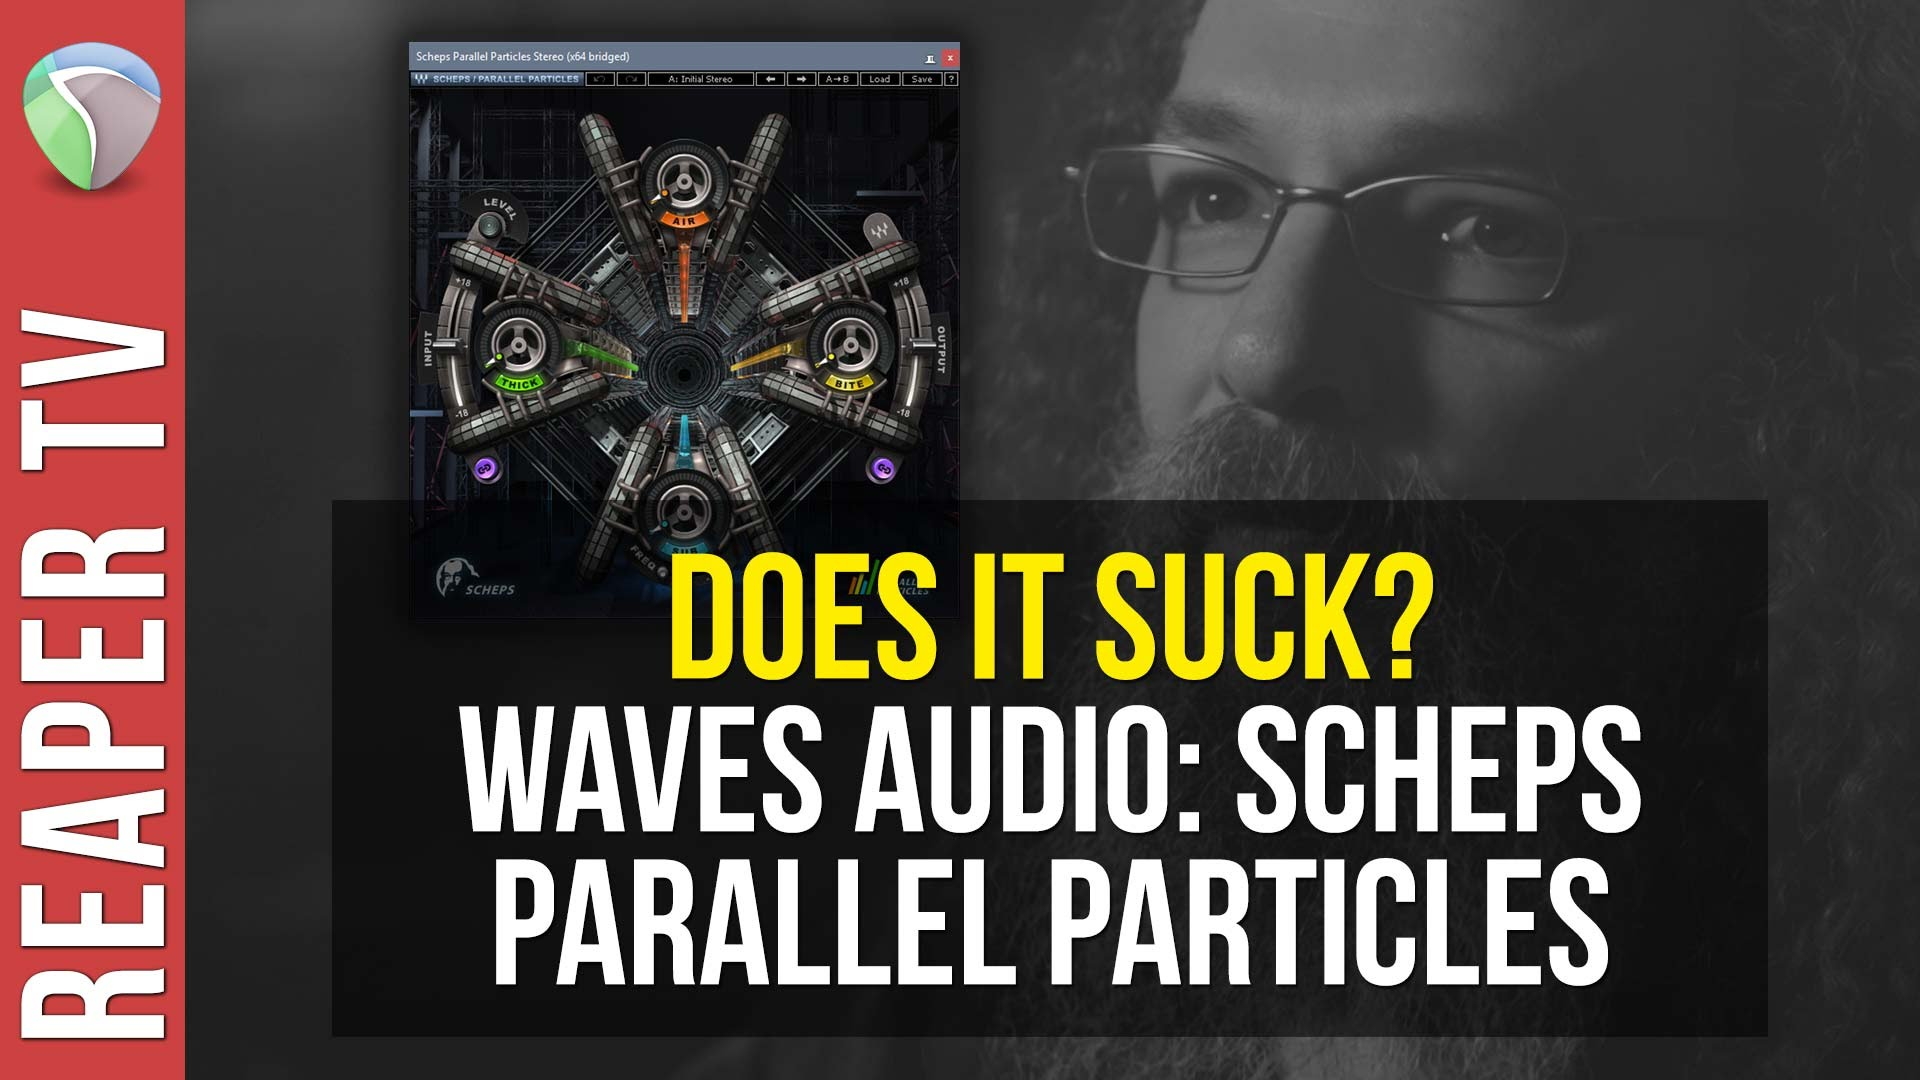 Scheps Parallel Particles Demo – Does It Suck?